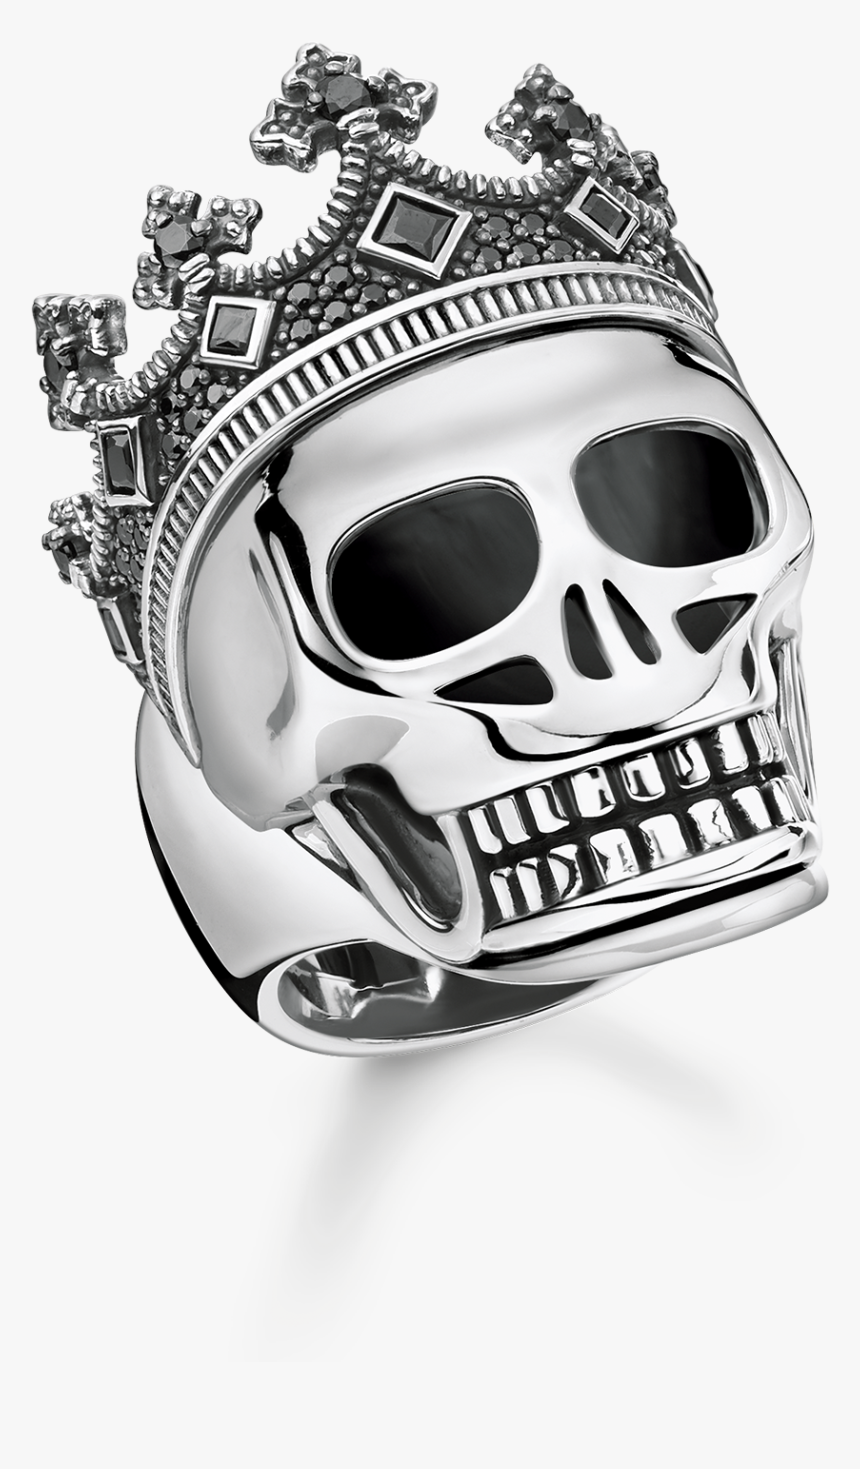 44mm King Of Hearts Charm Silver Yellow Plated Playing - Bague Thomas Sabo Tete De Mort, HD Png Download, Free Download